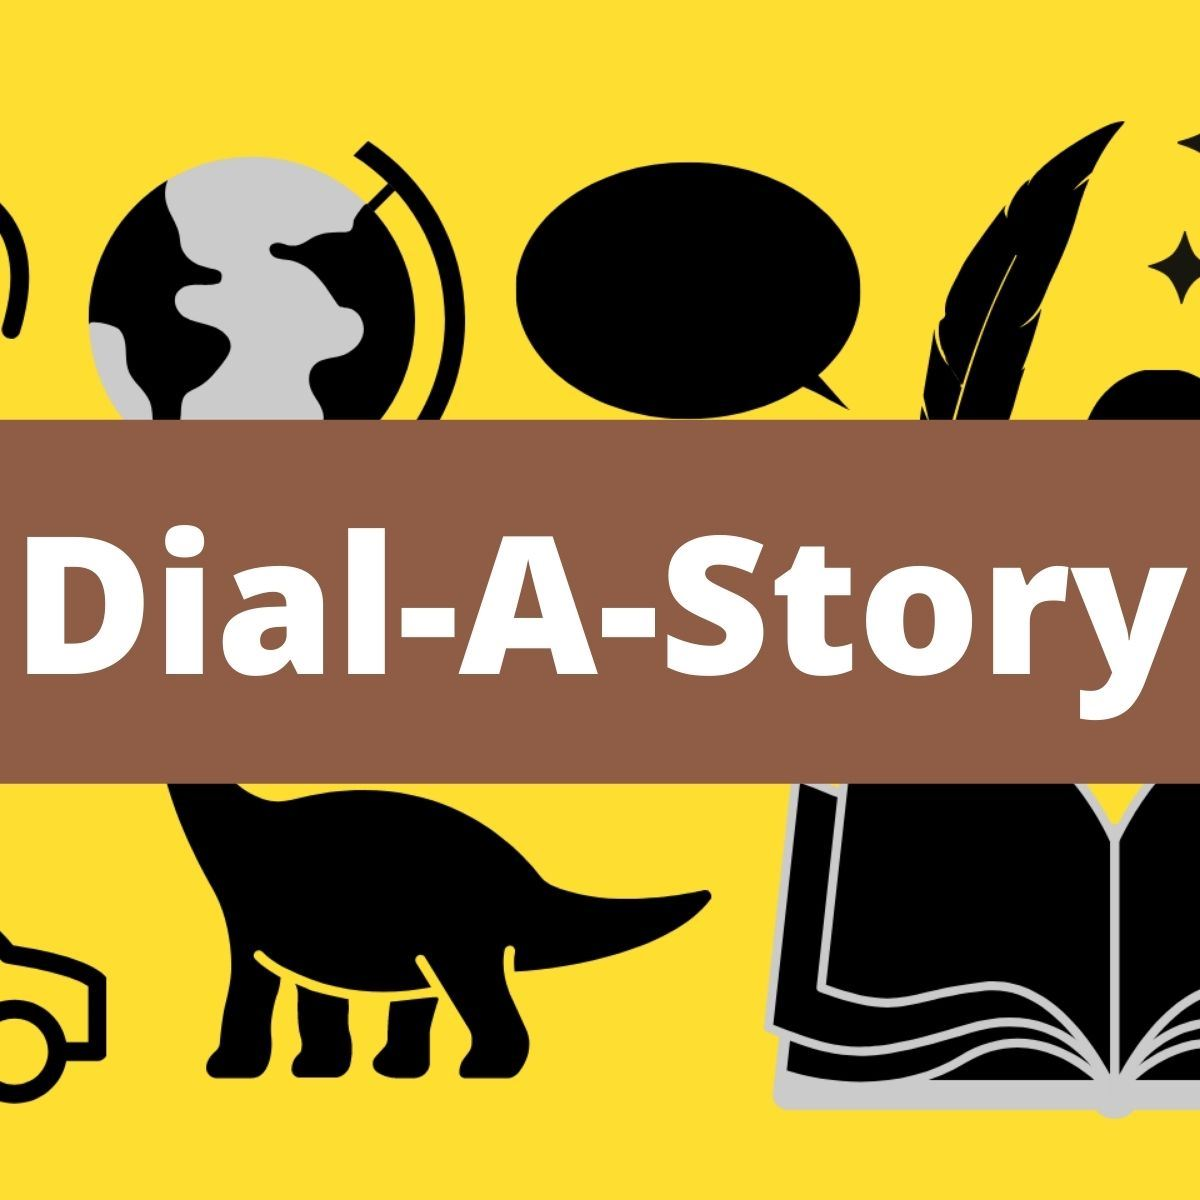 Dial-A-Story 910-900-9099